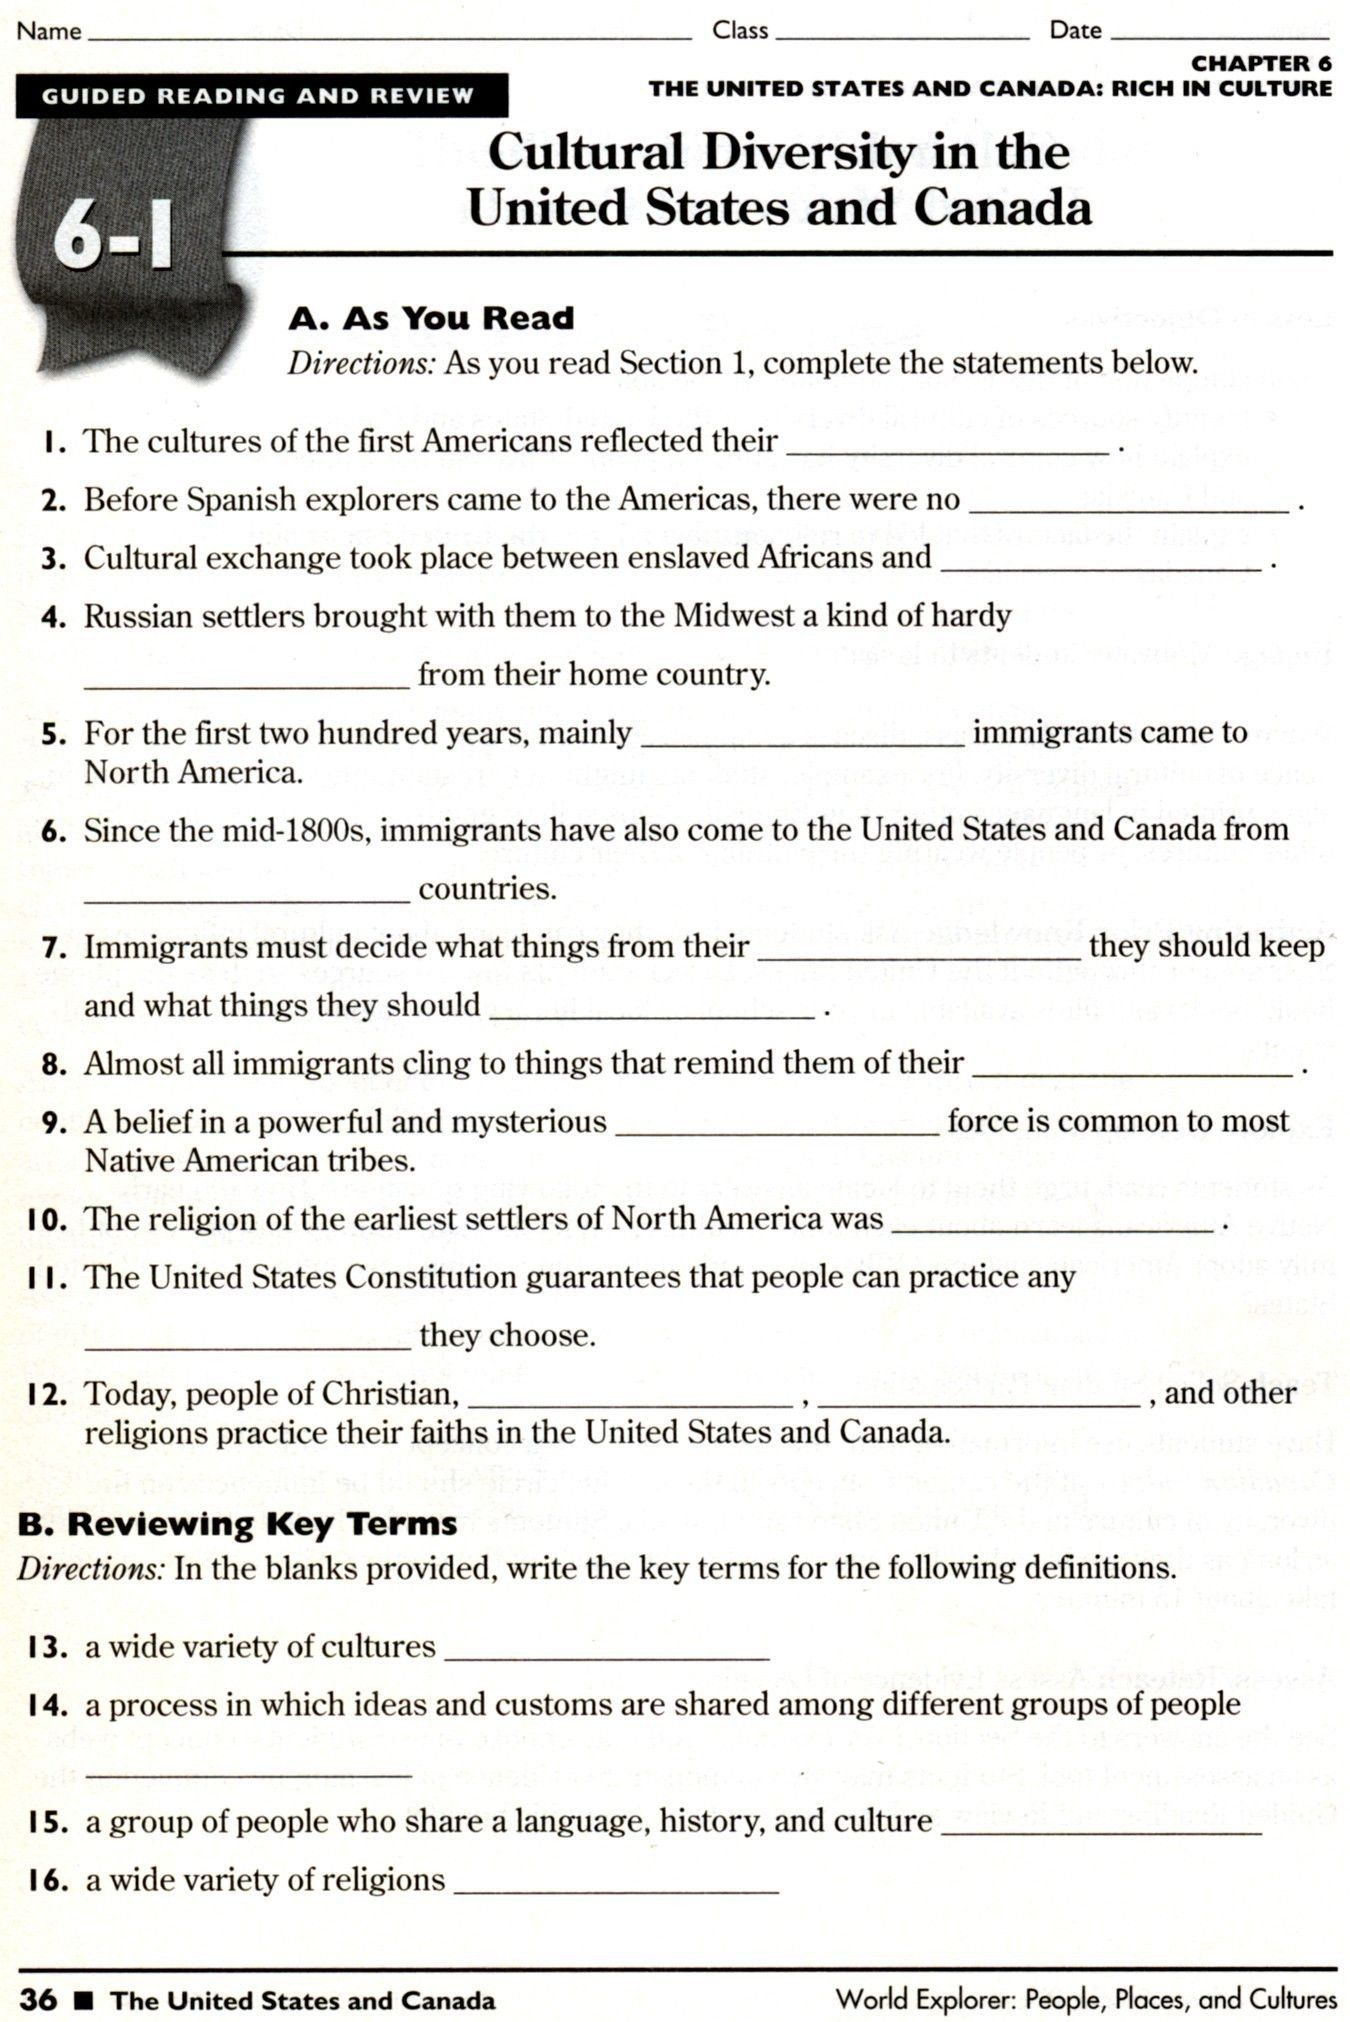 hight resolution of 7th Grade Social Stu S Map Worksheets   Printable Worksheets and Activities  for Teachers